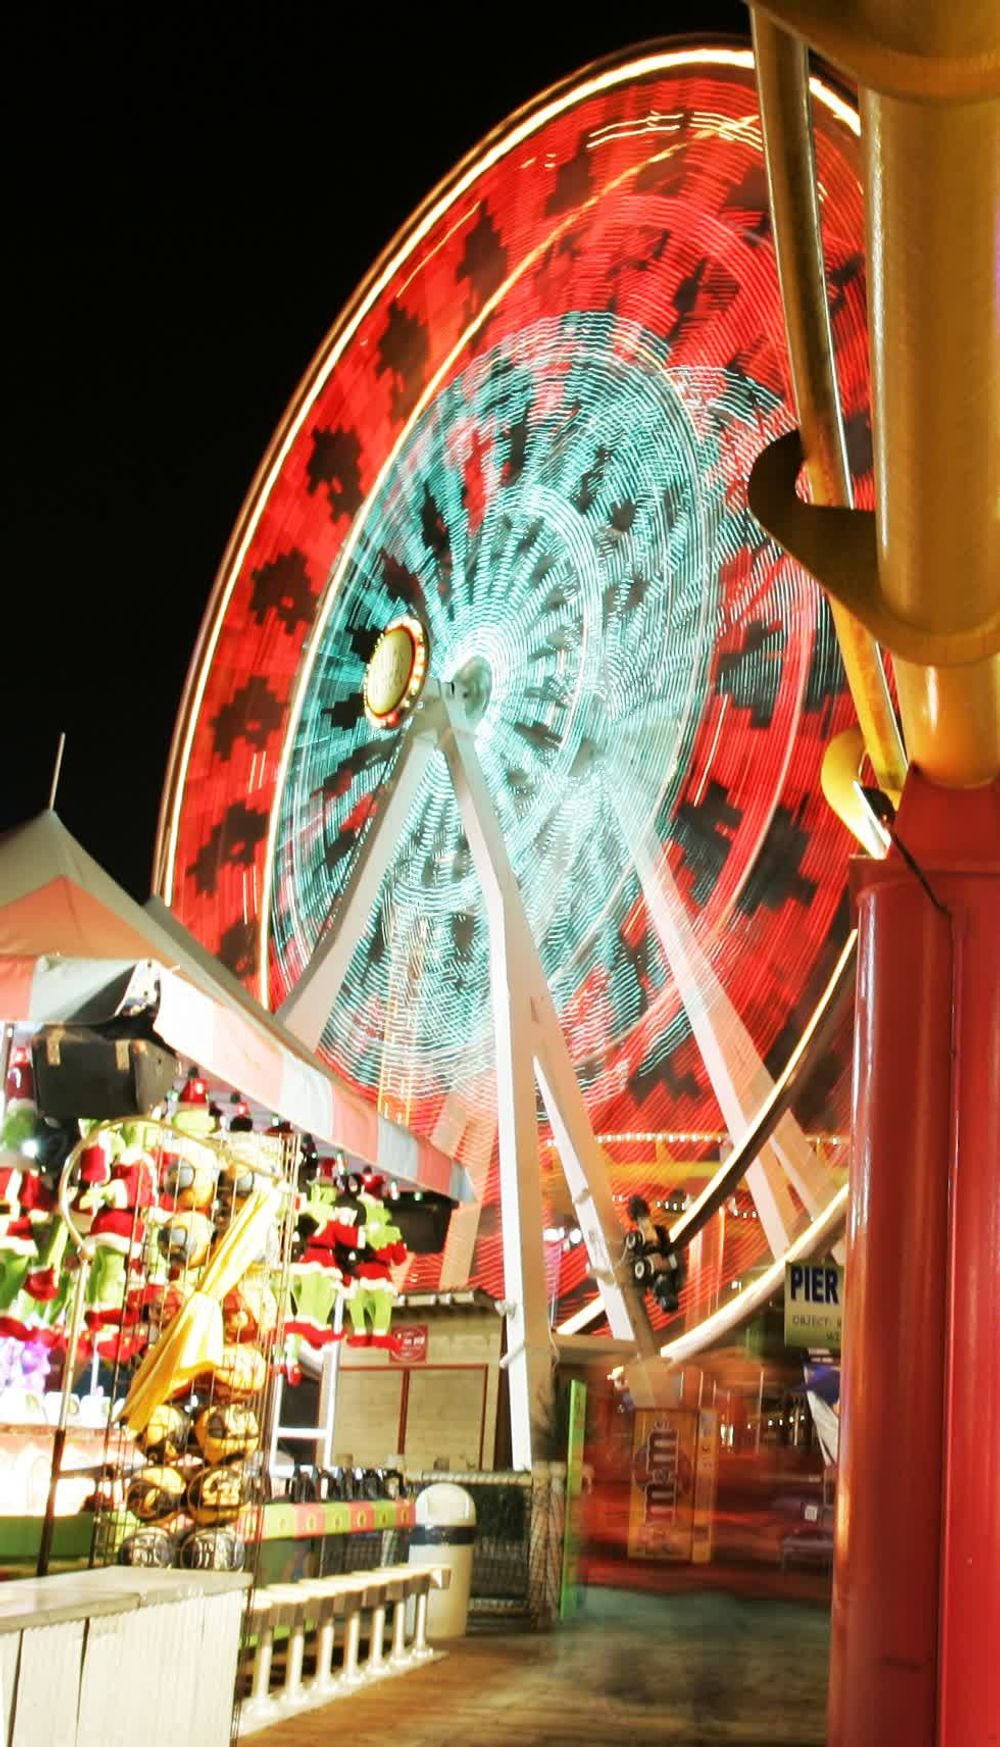 Colorful Lit Up Wheel at Sant Monica Luna Park in Los Angeles